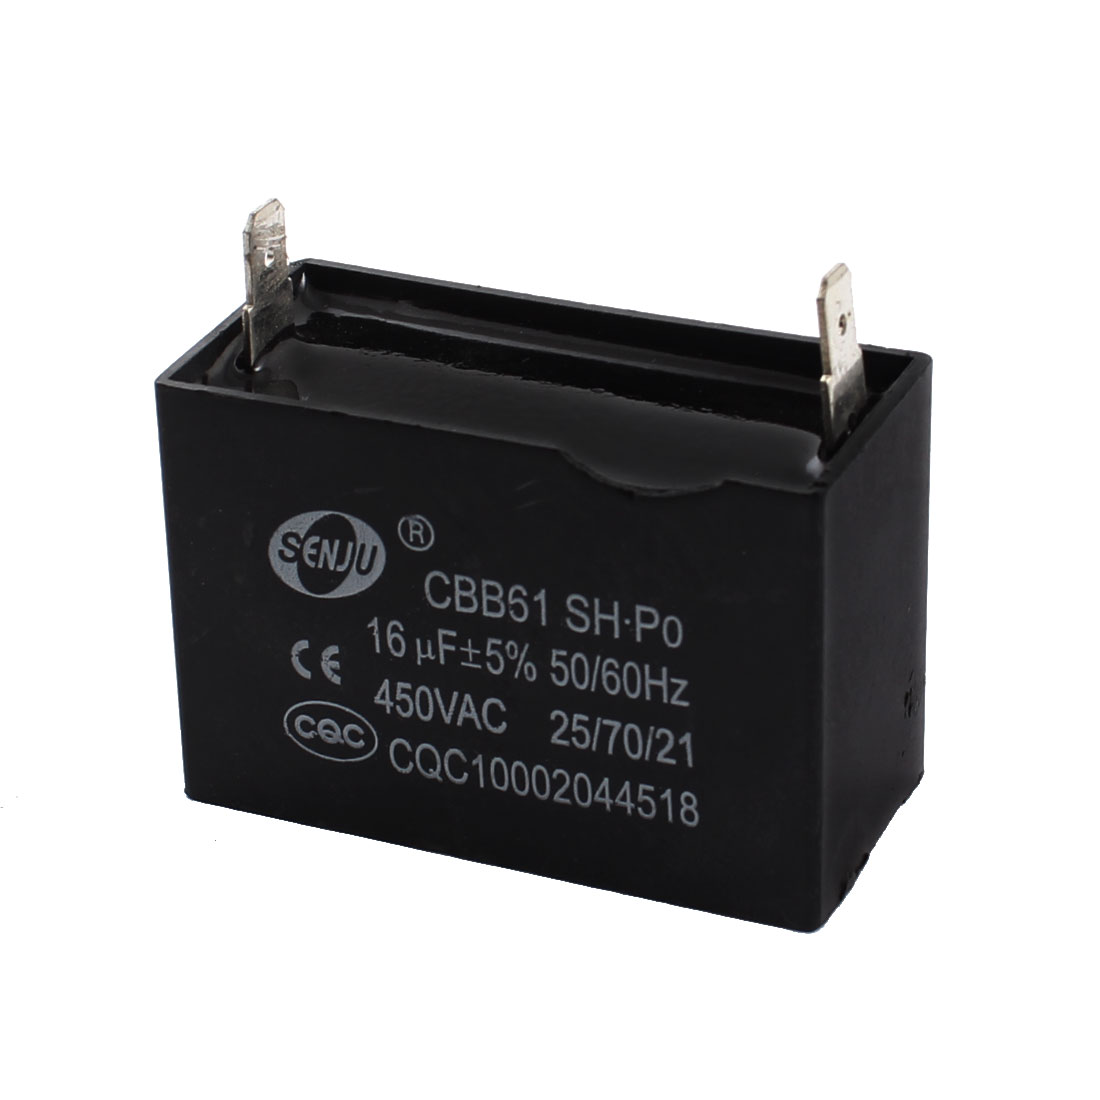 CBB61 AC 450V 16uF Fan 2 Terminals Motor Run Capacitor for Air Conditioner